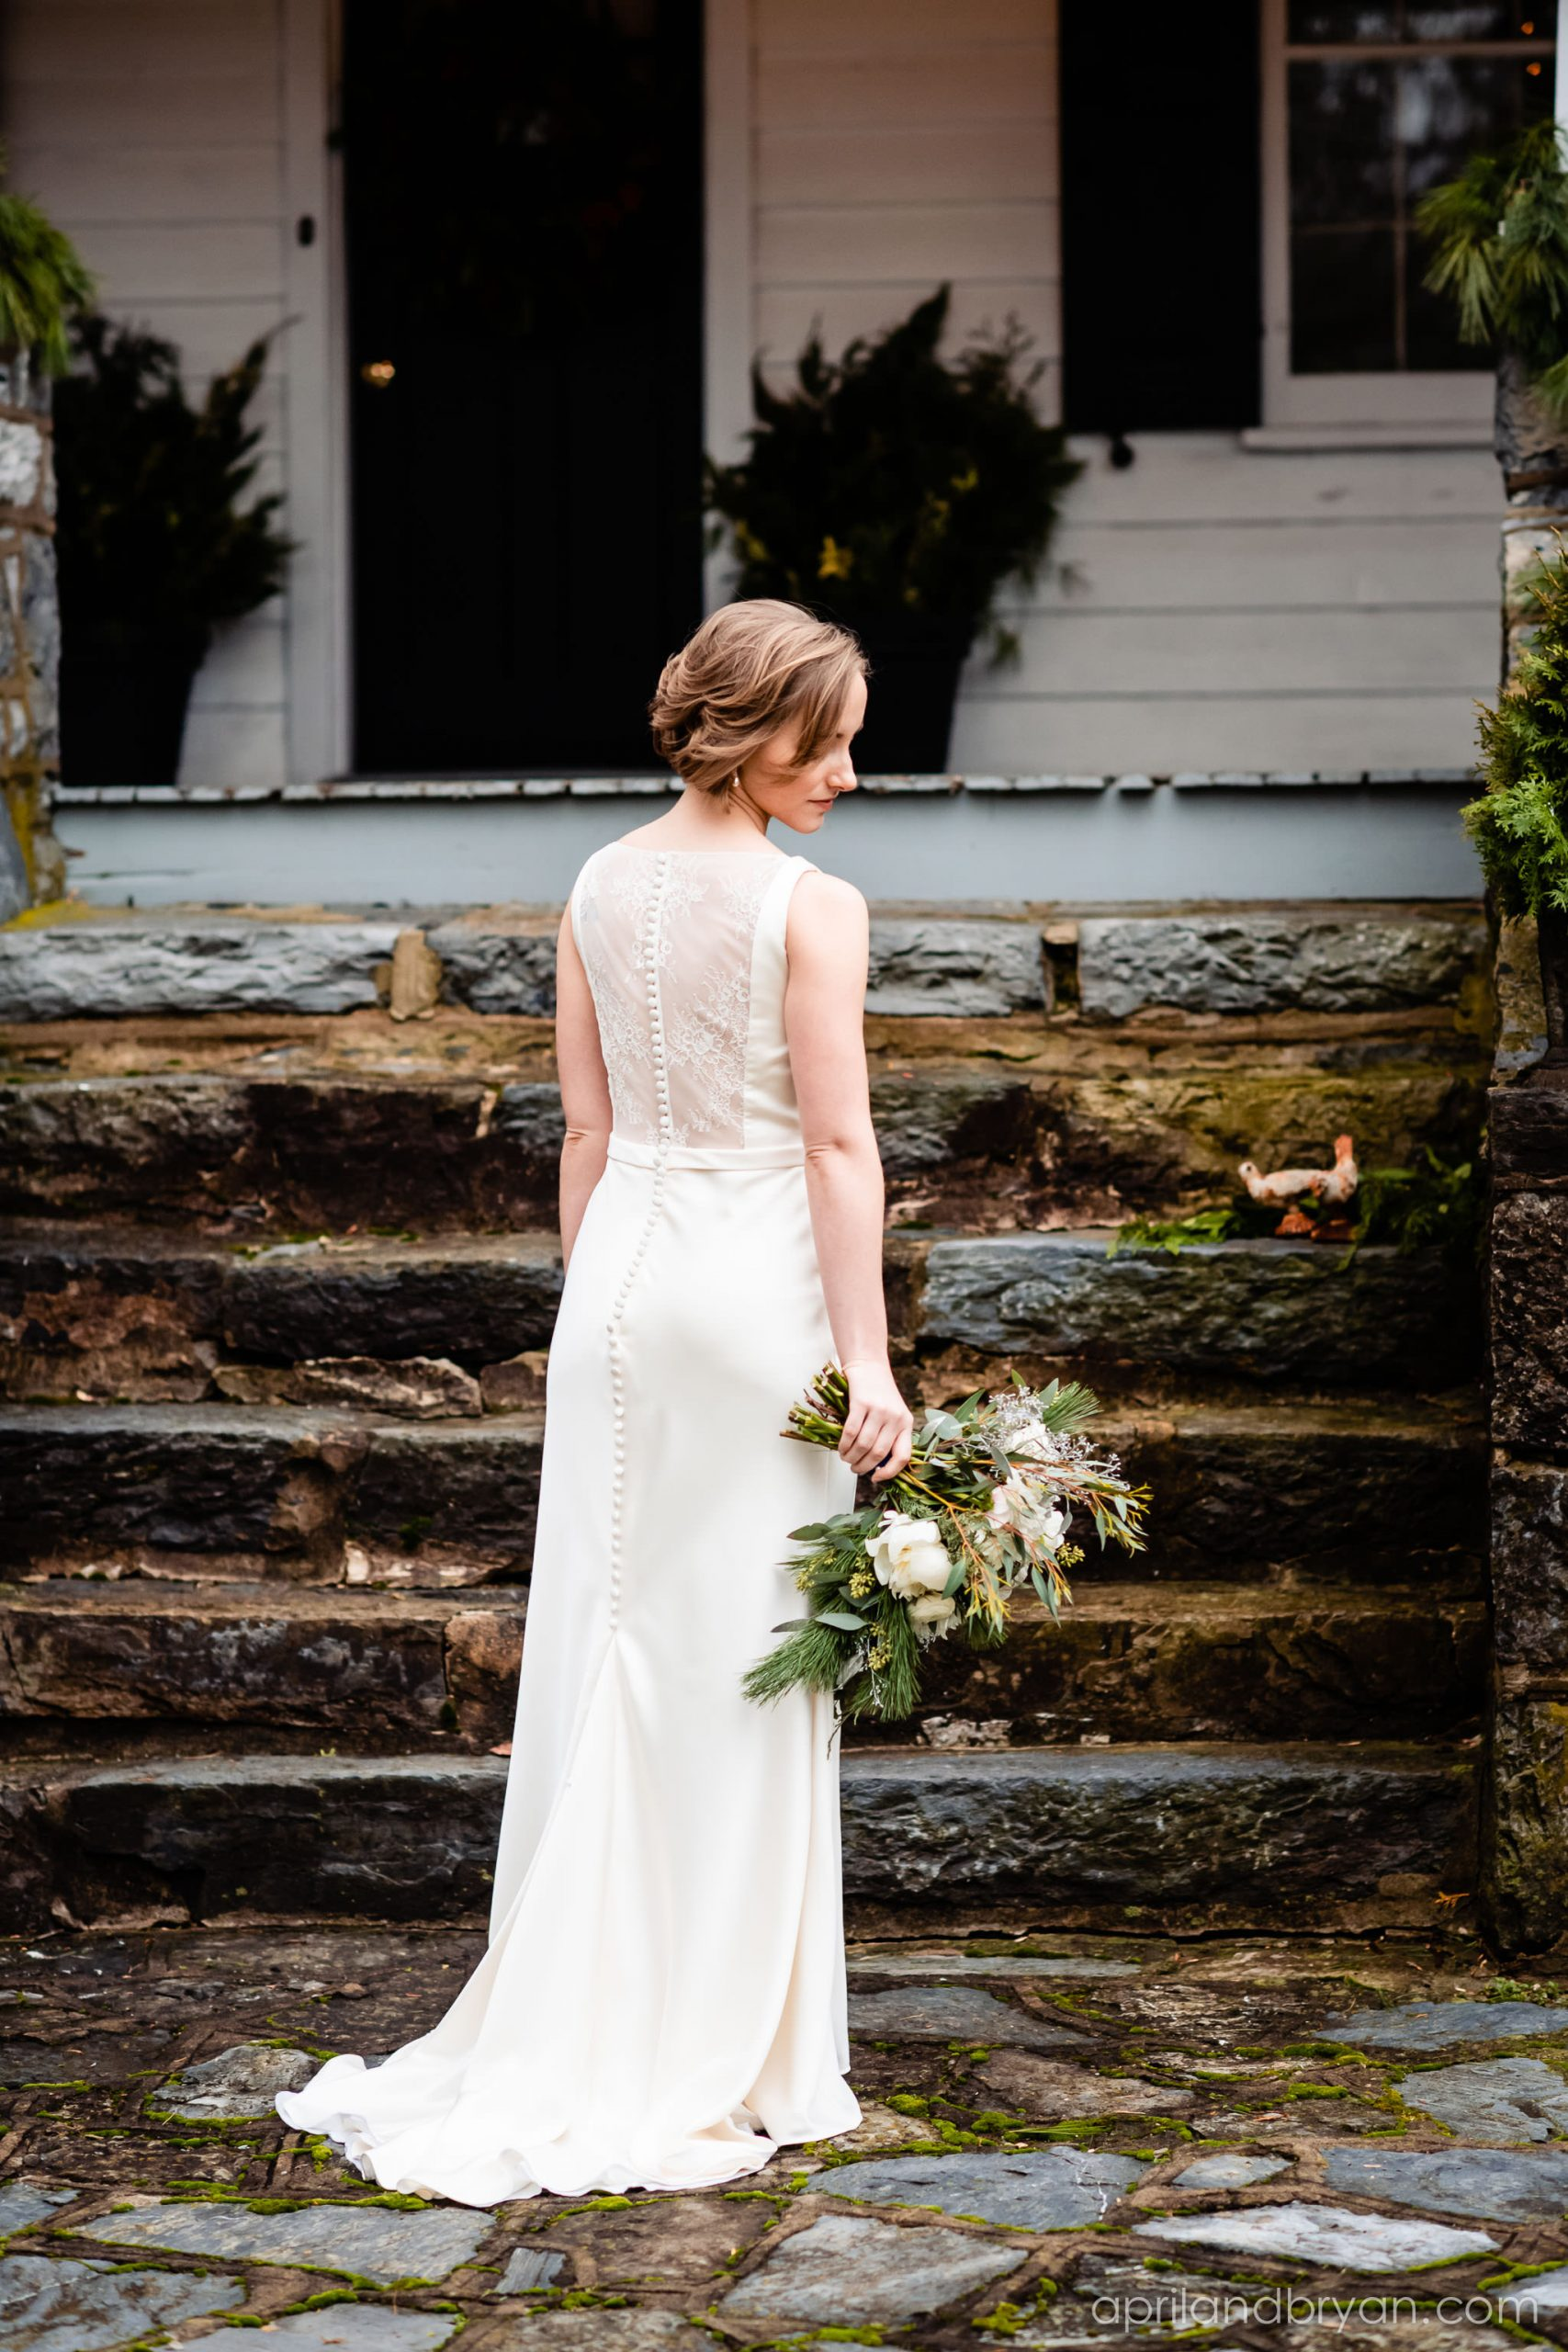 A trail of buttons line the back of Hannah as she takes a moment before she walks down the isle. Hannah and Ethan Farrell had their classic romantic styled wedding held at their home in Mount Joy, followed by a reception at the catacombs underneath Bube's Brewery. Photographed by April & Bryan Photography, the couple had the opportunity to showcase their early 1900s style and accommodate a small guest list. Featured on Dream Weddings.